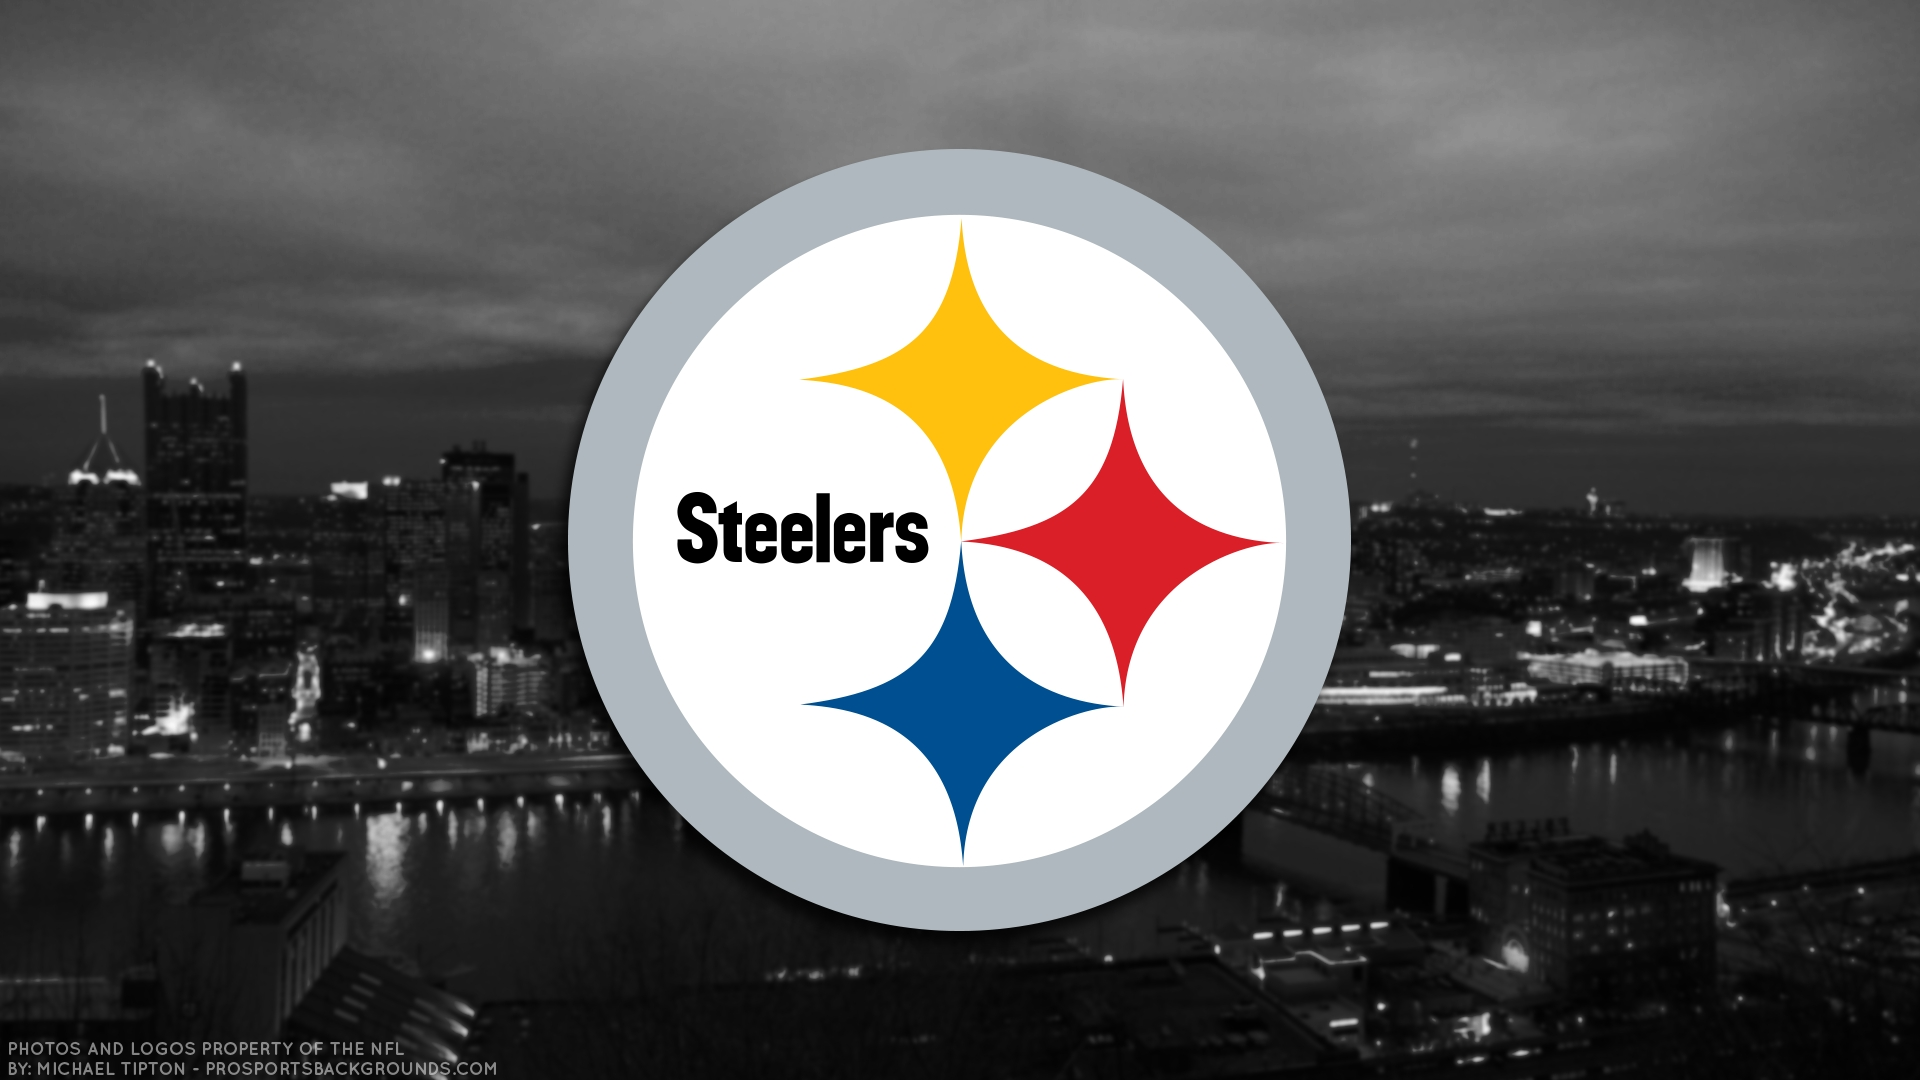 2018 pittsburgh steelers wallpapers - pc |iphone| android